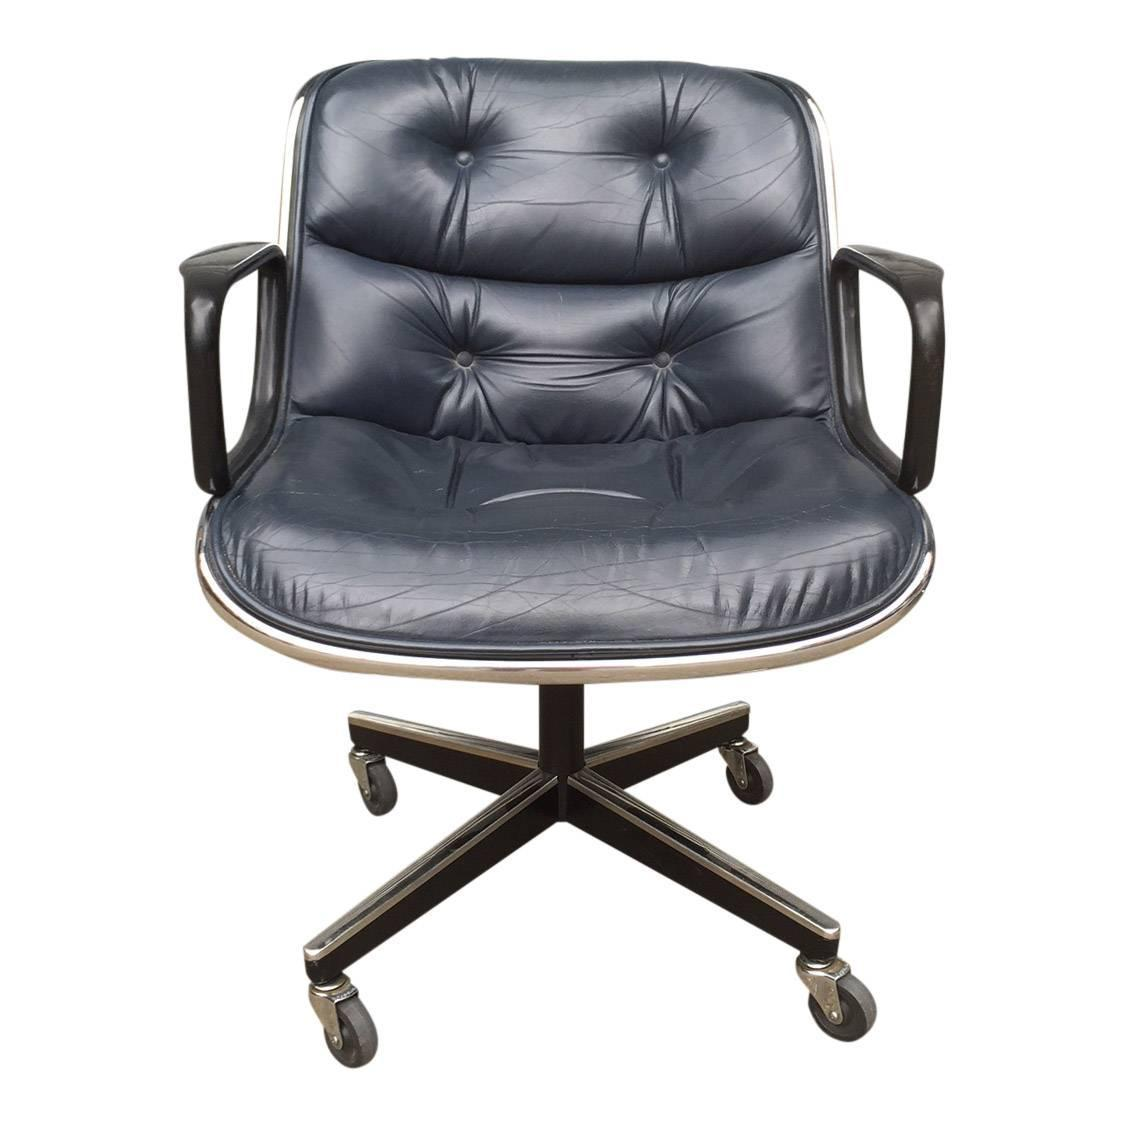 charles pollock for knoll office chairs in blue leather